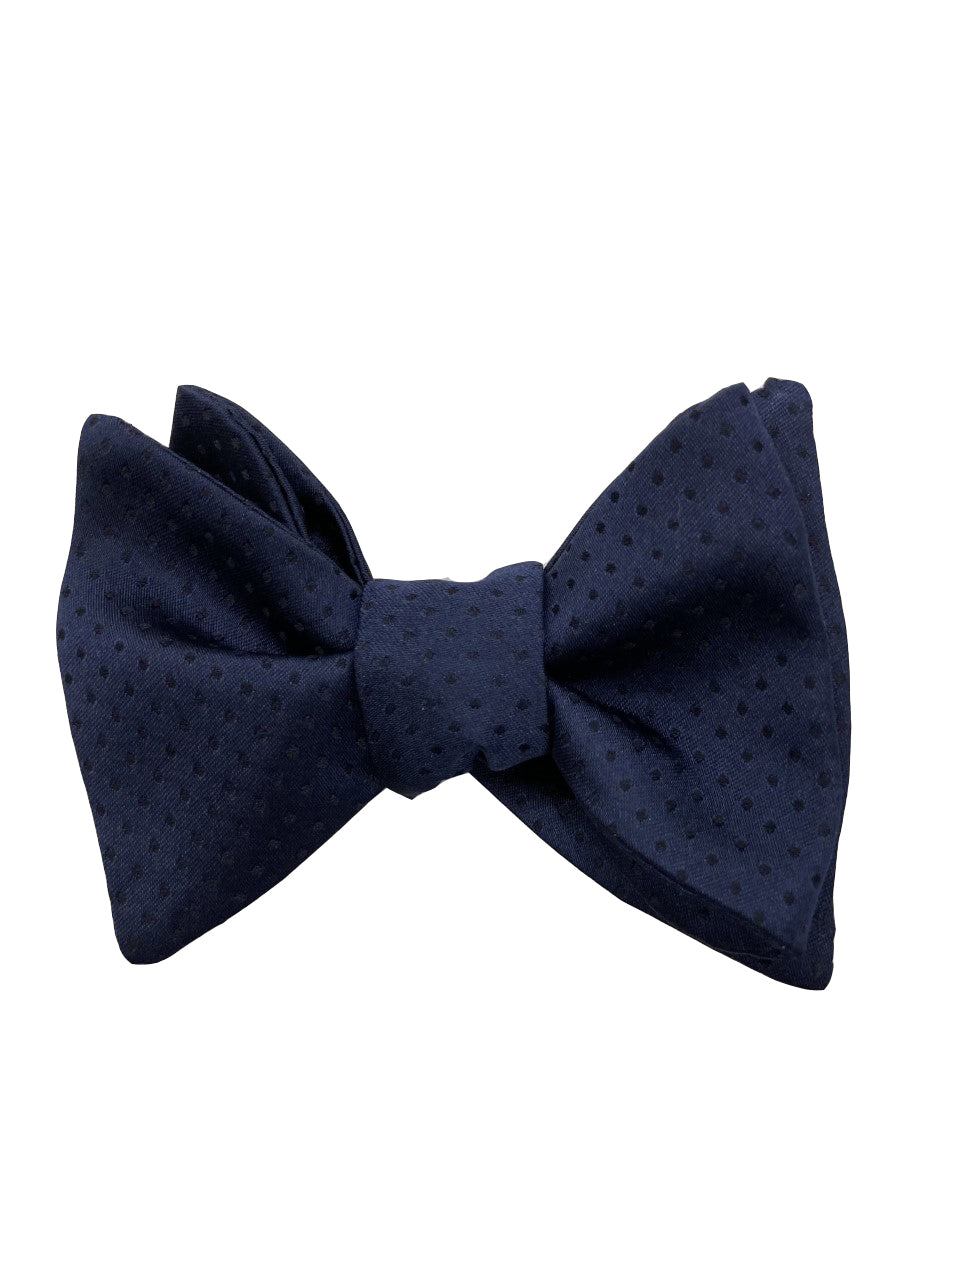 Carrot & Gibbs Navy with Black Pin Dots